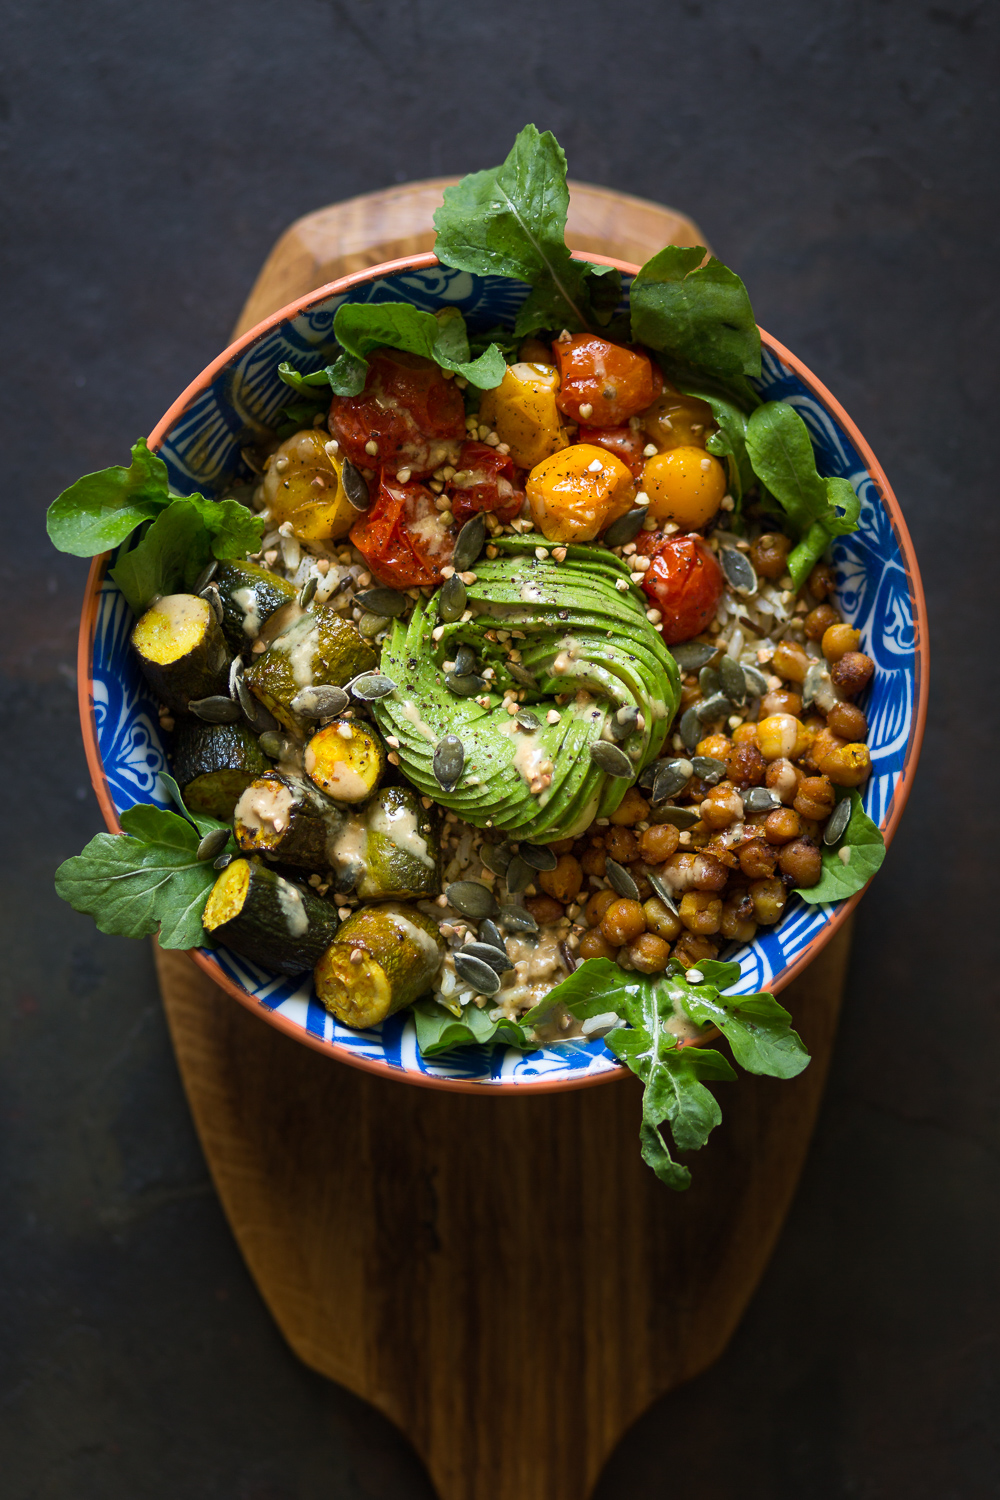 Roasted tomato and chickpea bowl